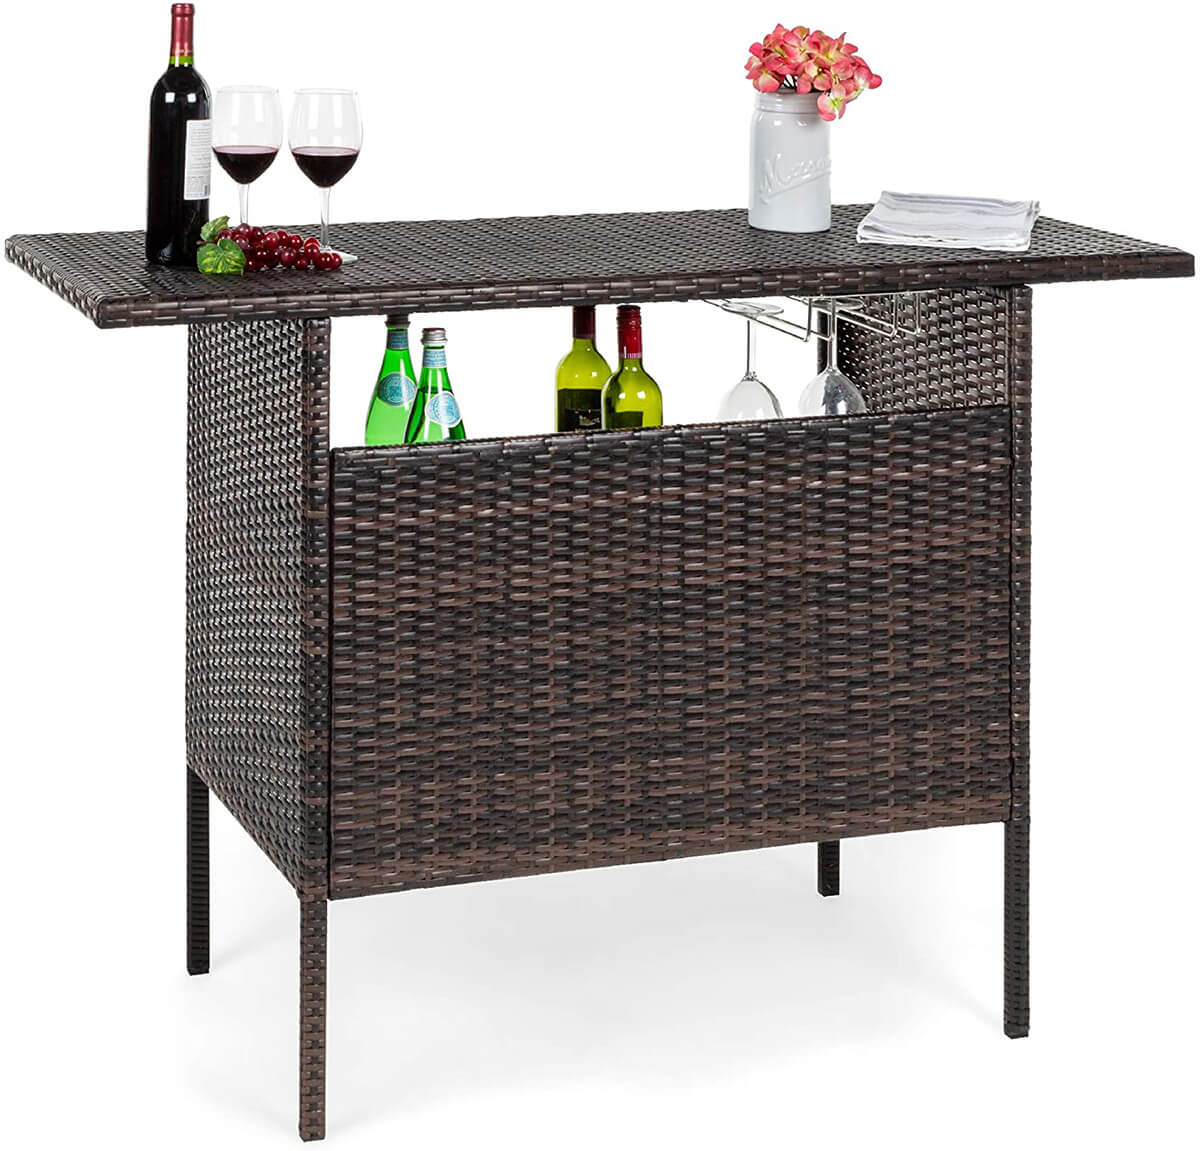 Wicker and Wine: a Match Made in Heaven